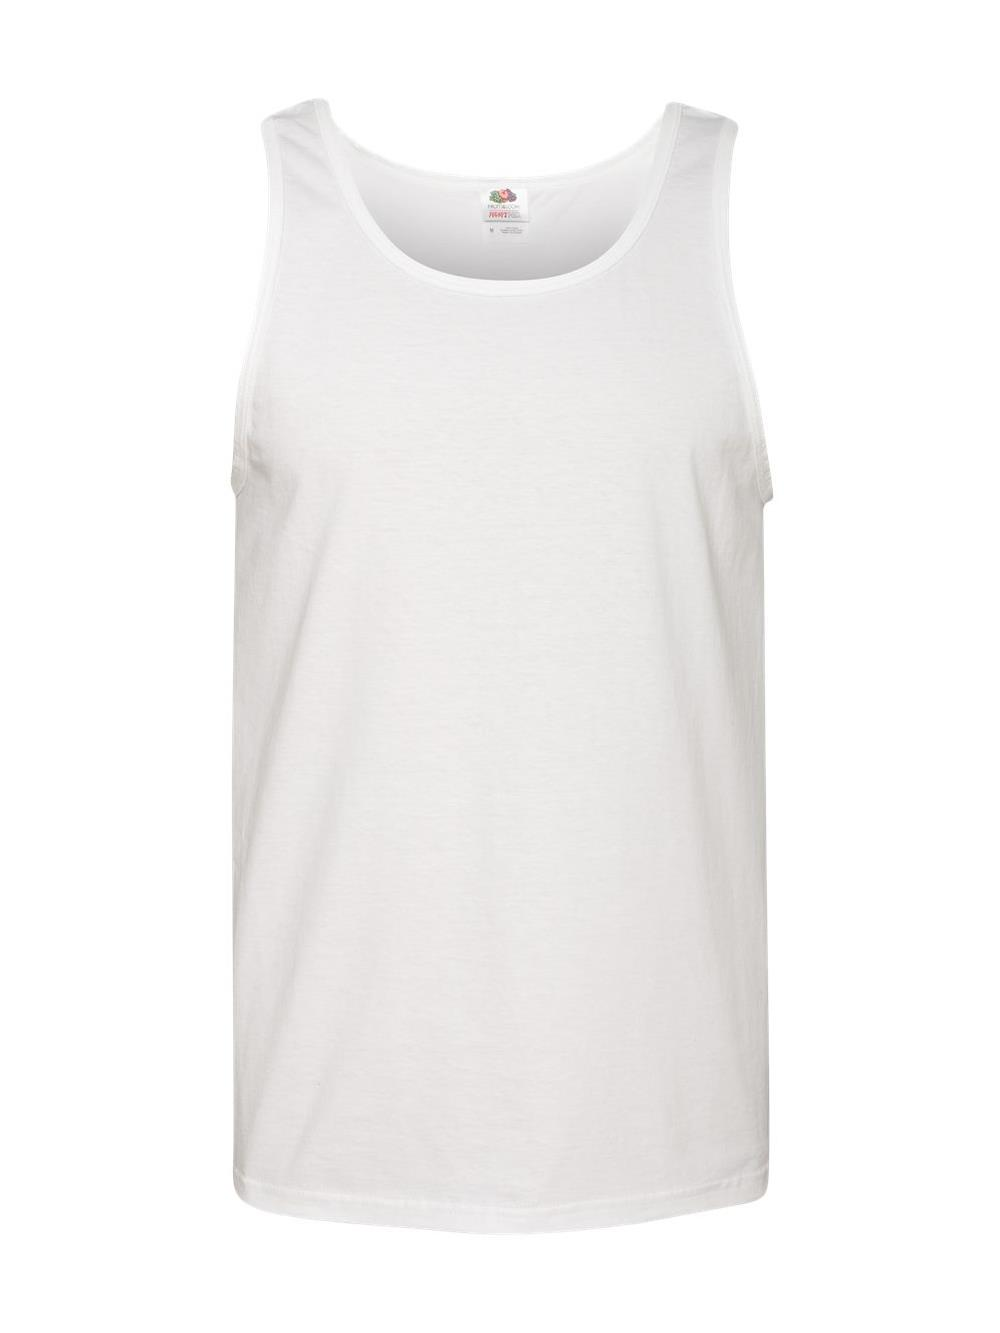 Fruit of the Loom T-Shirts HD Cotton Tank Top 39TKR